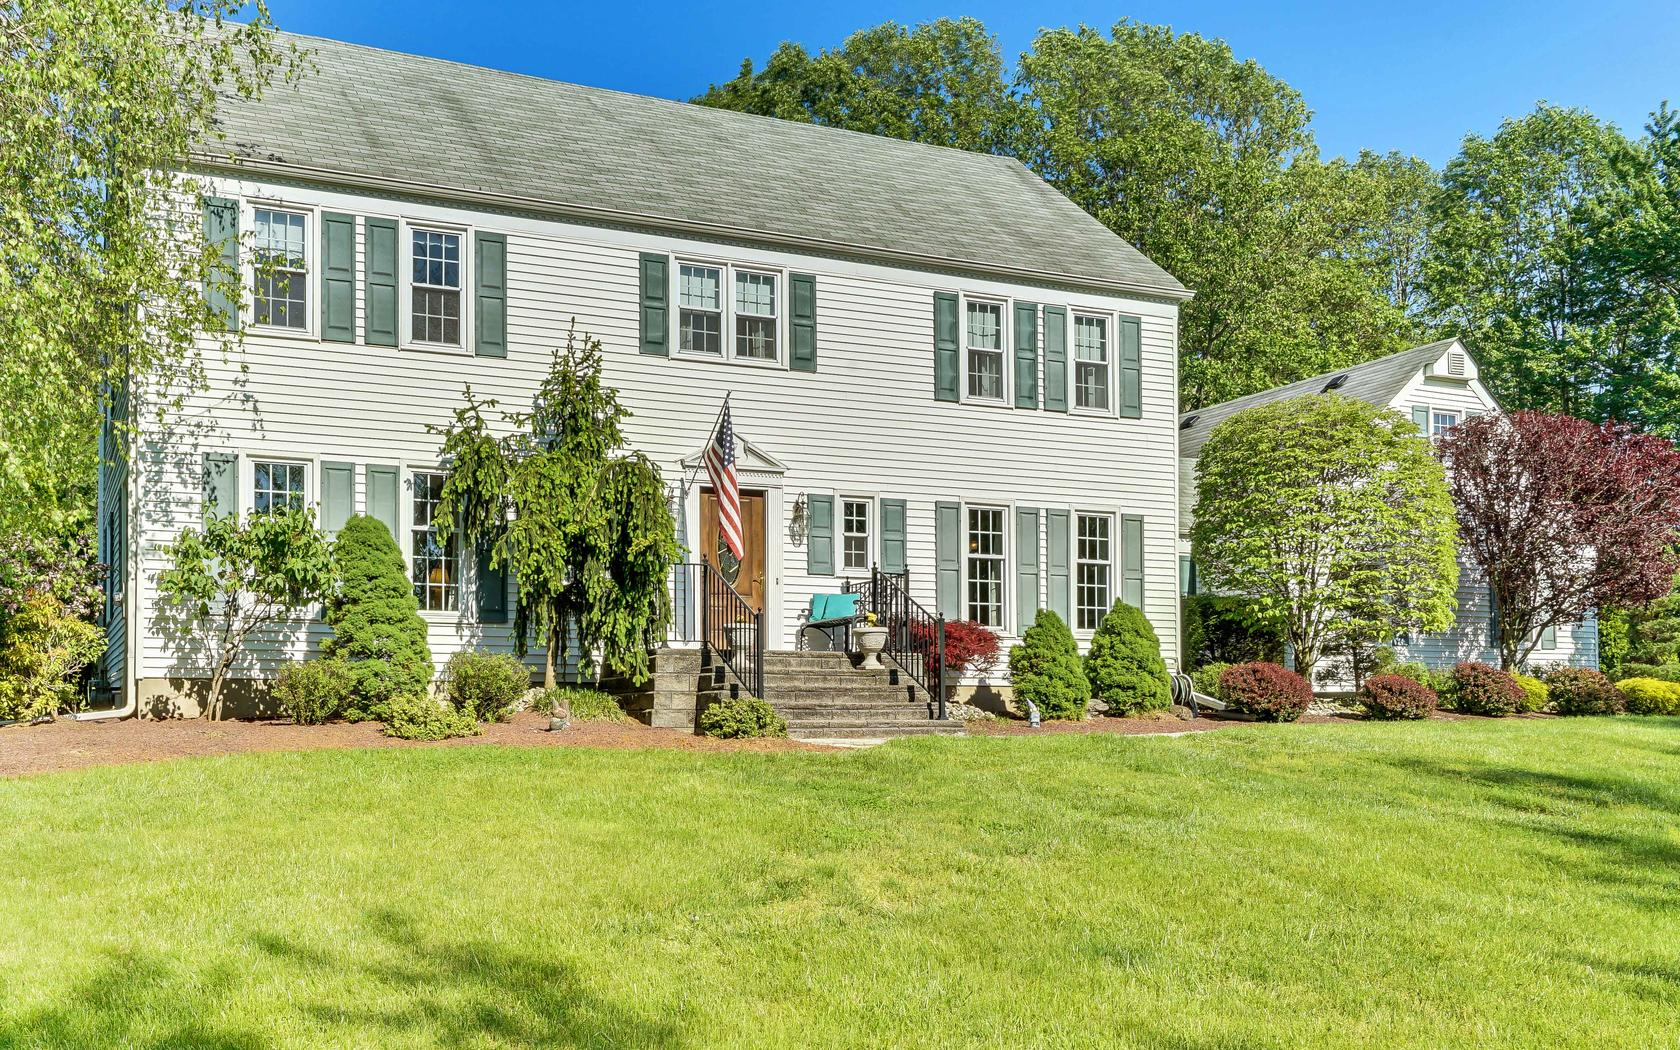 Single Family Home for Sale at Traditional Center Hall Colonial 21 Cindy Lane Holmdel, New Jersey, 07733 United States